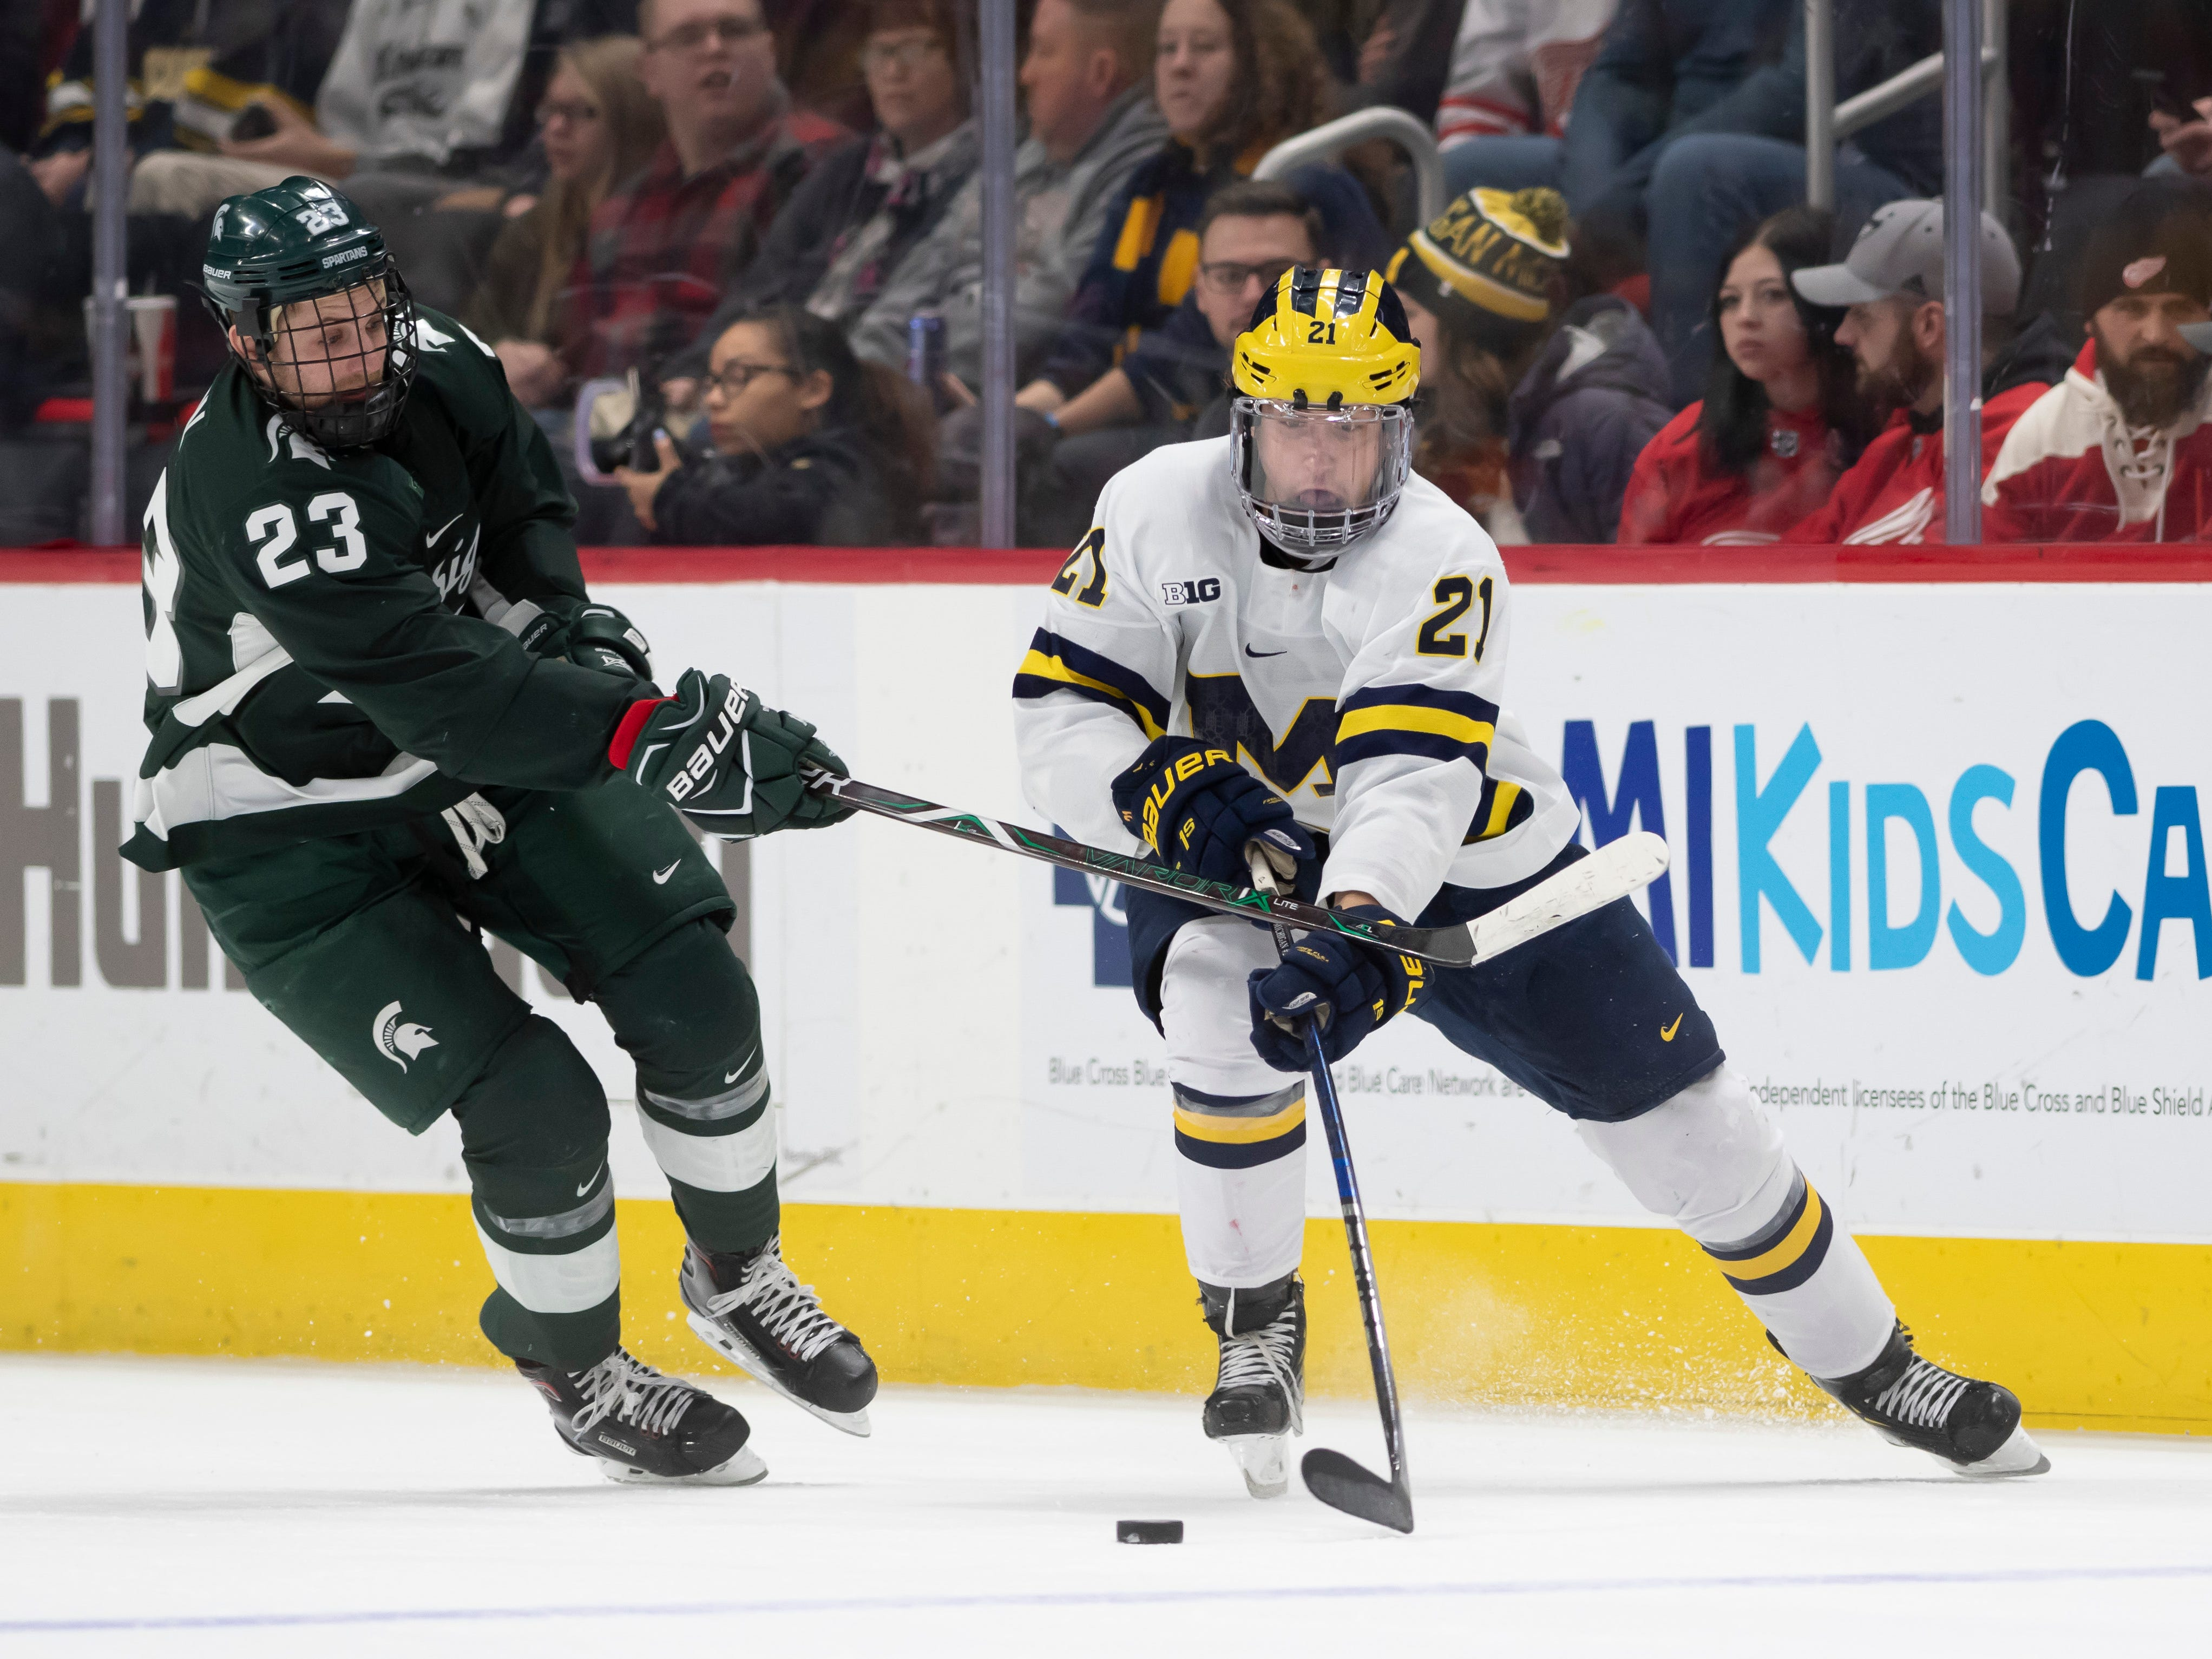 Michigan State forward Cody Milan tries to steal the puck from Michigan forward Michael Pastujov in the first period.